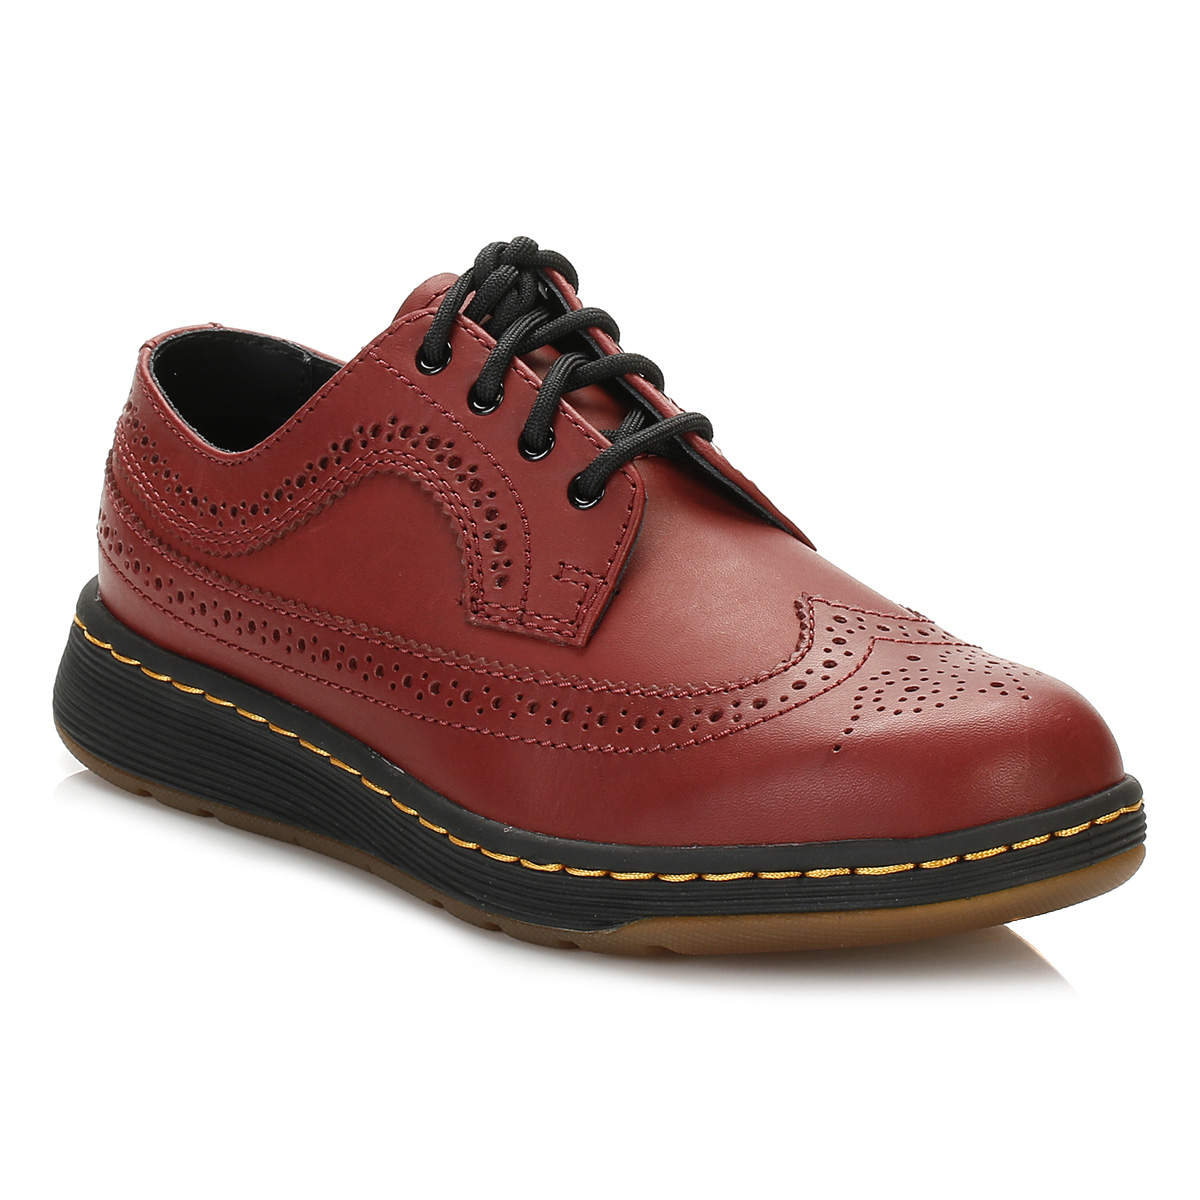 Shop for Womens Brogues at Stylight: items By top brands All colours & styles up to −70% on sale» Browse now!